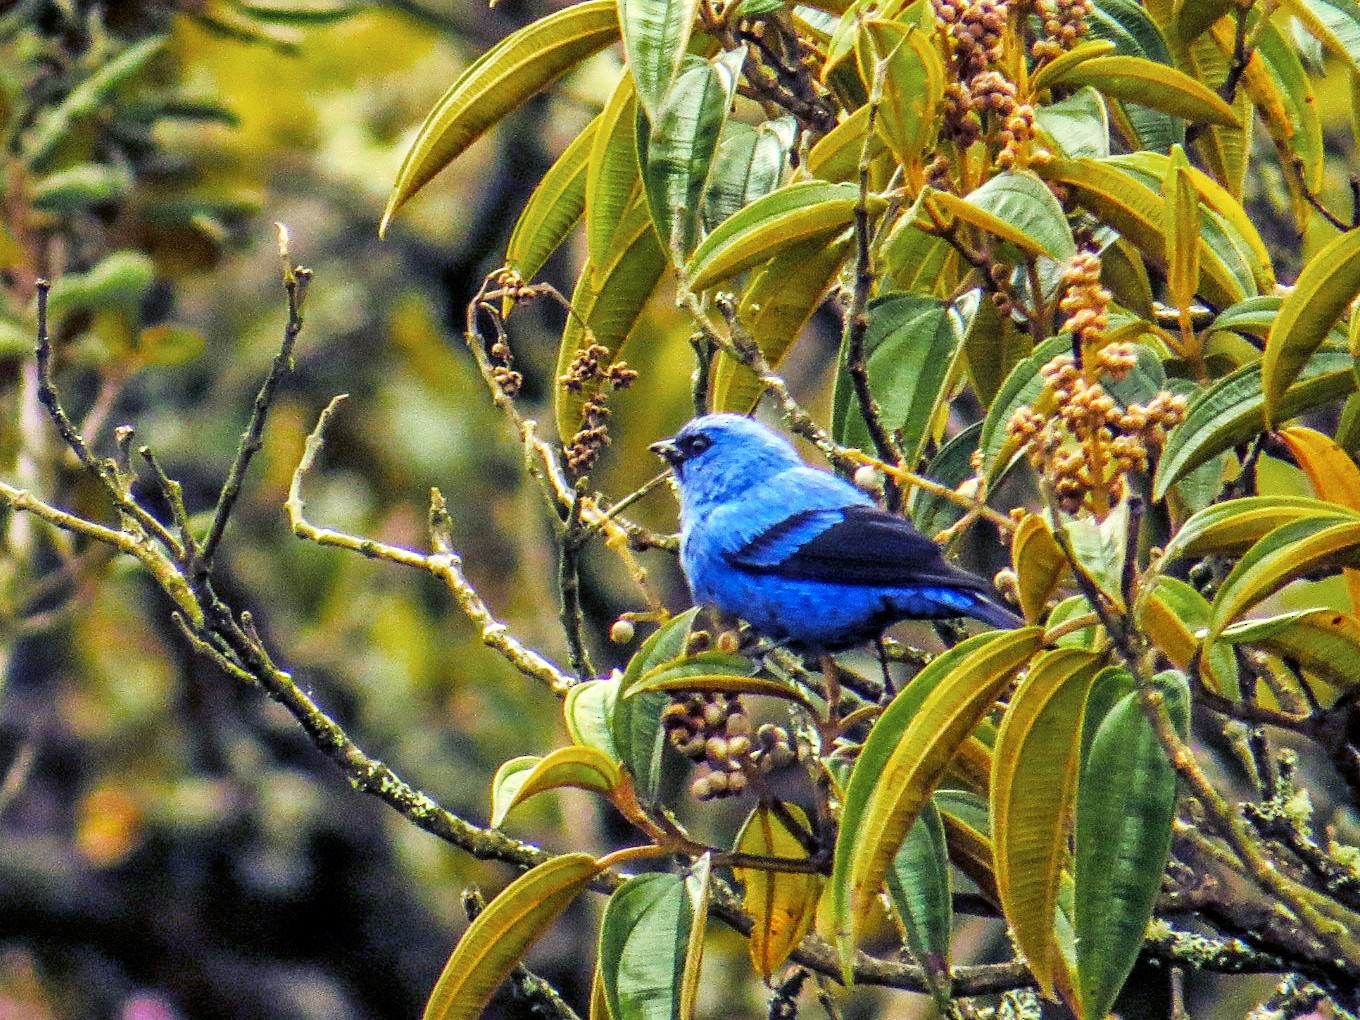 Blue-and-black Tanager - Gustavo Pisso